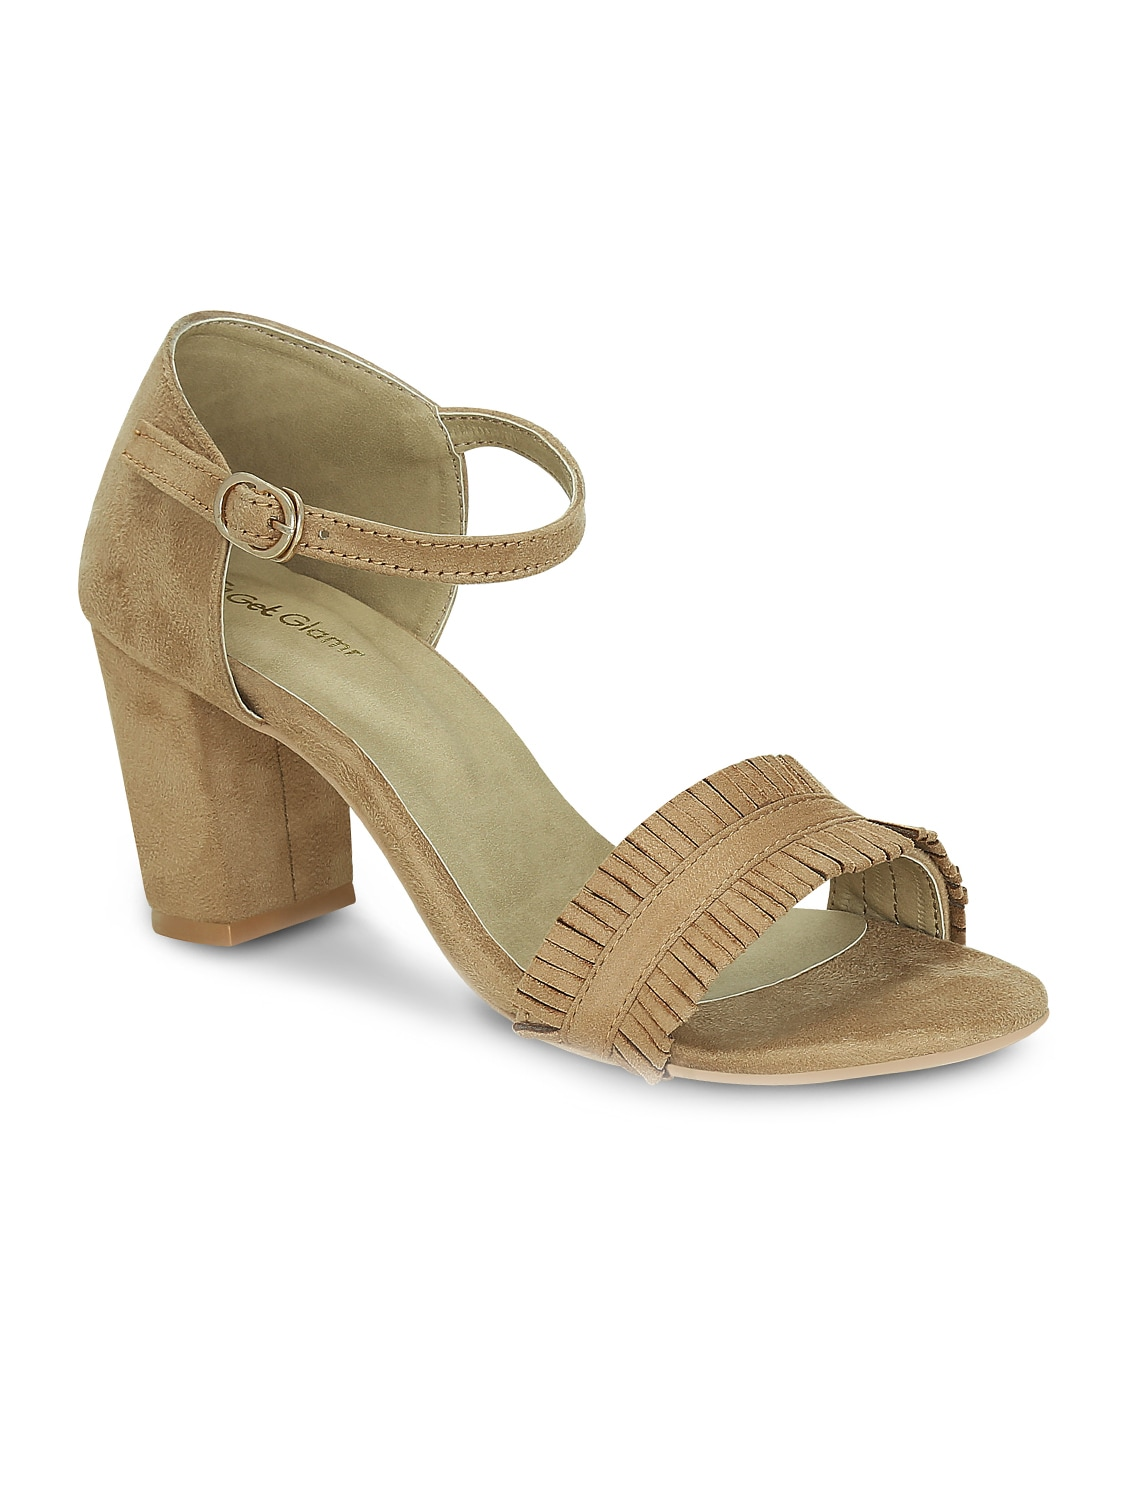 5d68715ce4dd5 Buy Beige Faux Leather Ankle Strap Sandals for Women from Get Glamr for  ₹1000 at 60% off